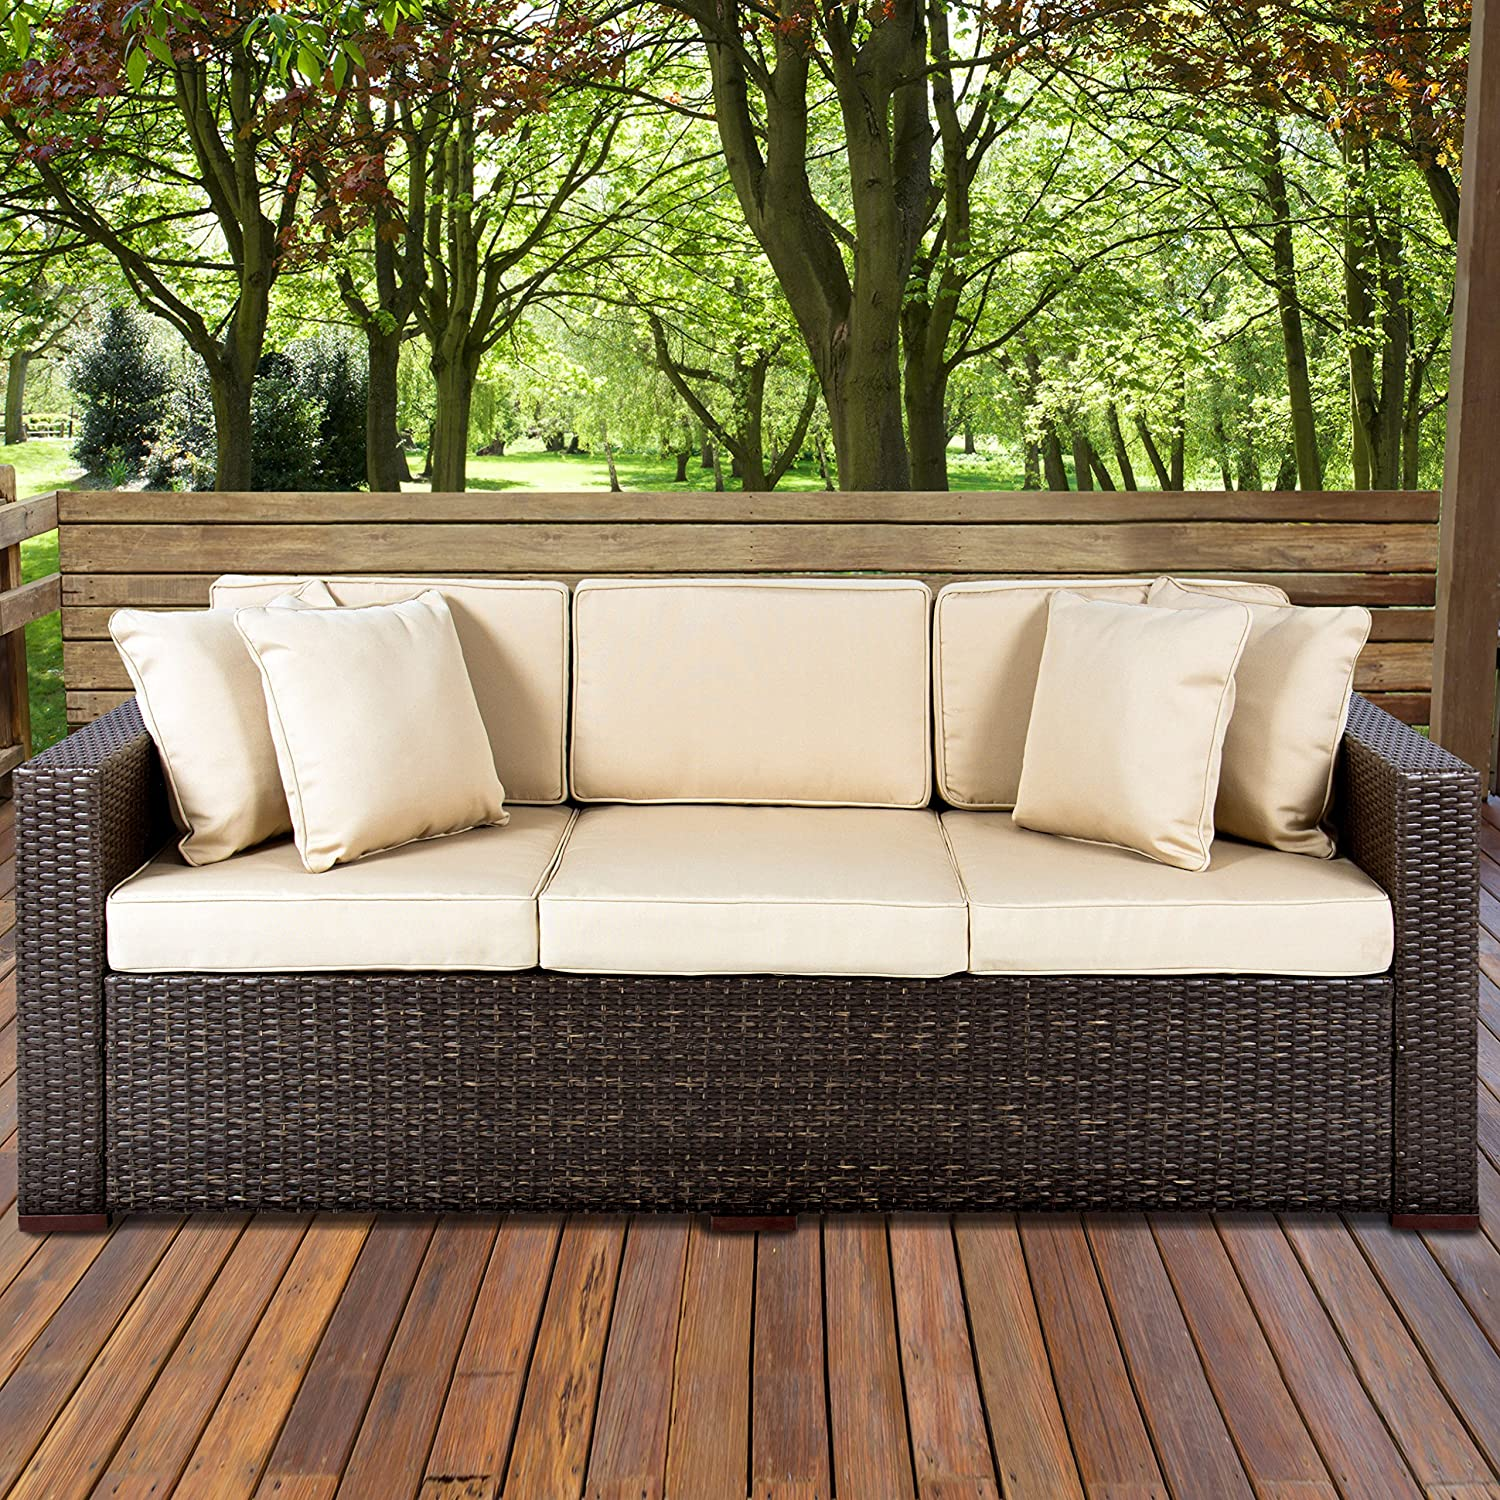 amazoncom best choiceproducts outdoor wicker patio furniture sofa 3 seater luxury comfort brown wicker couch garden outdoor - Garden Furniture 4 All